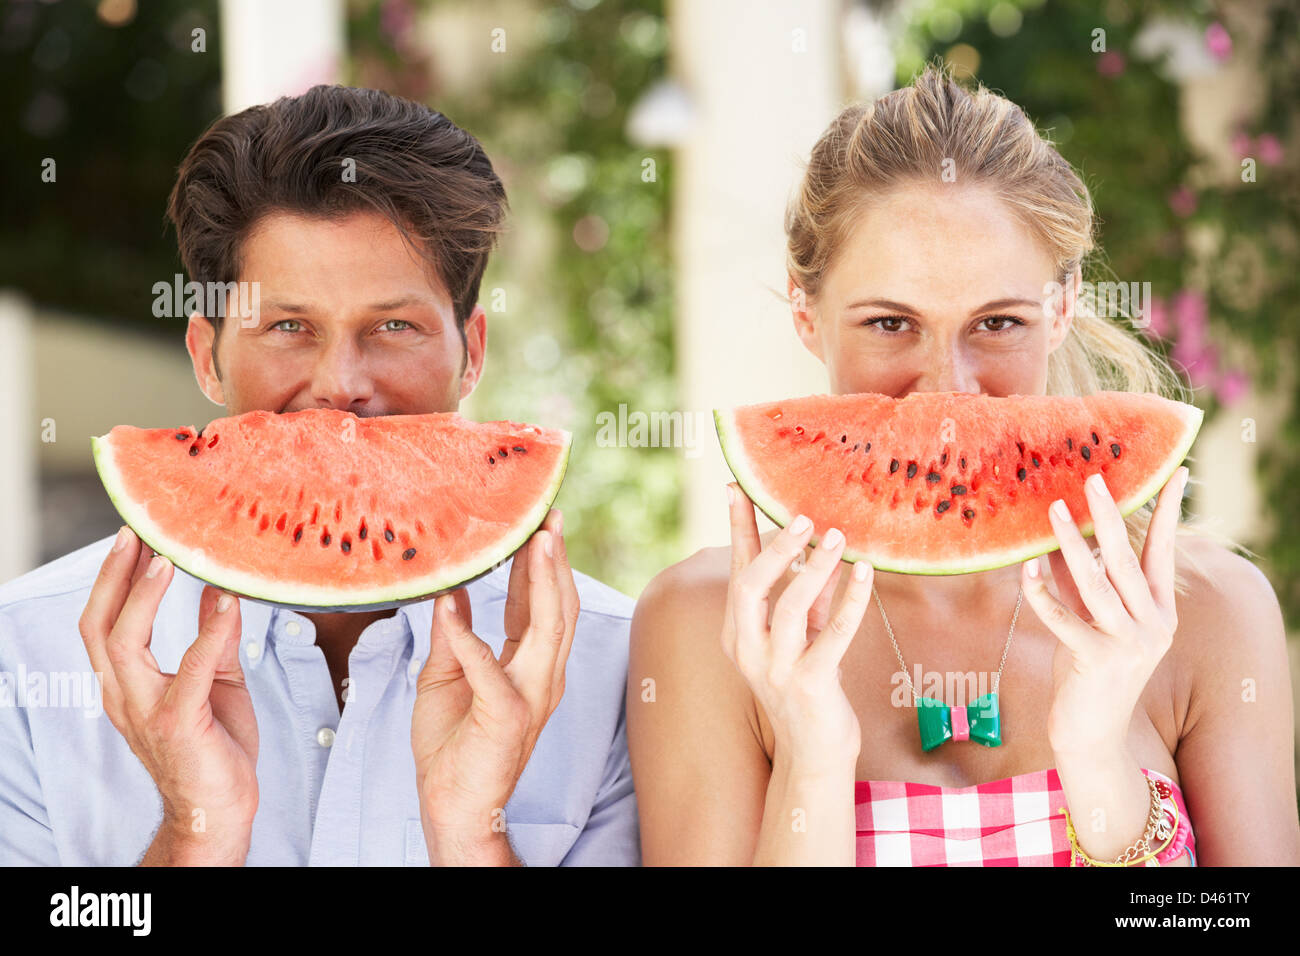 Mother And Daughter Enjoying Slices Of Water Melon - Stock Image